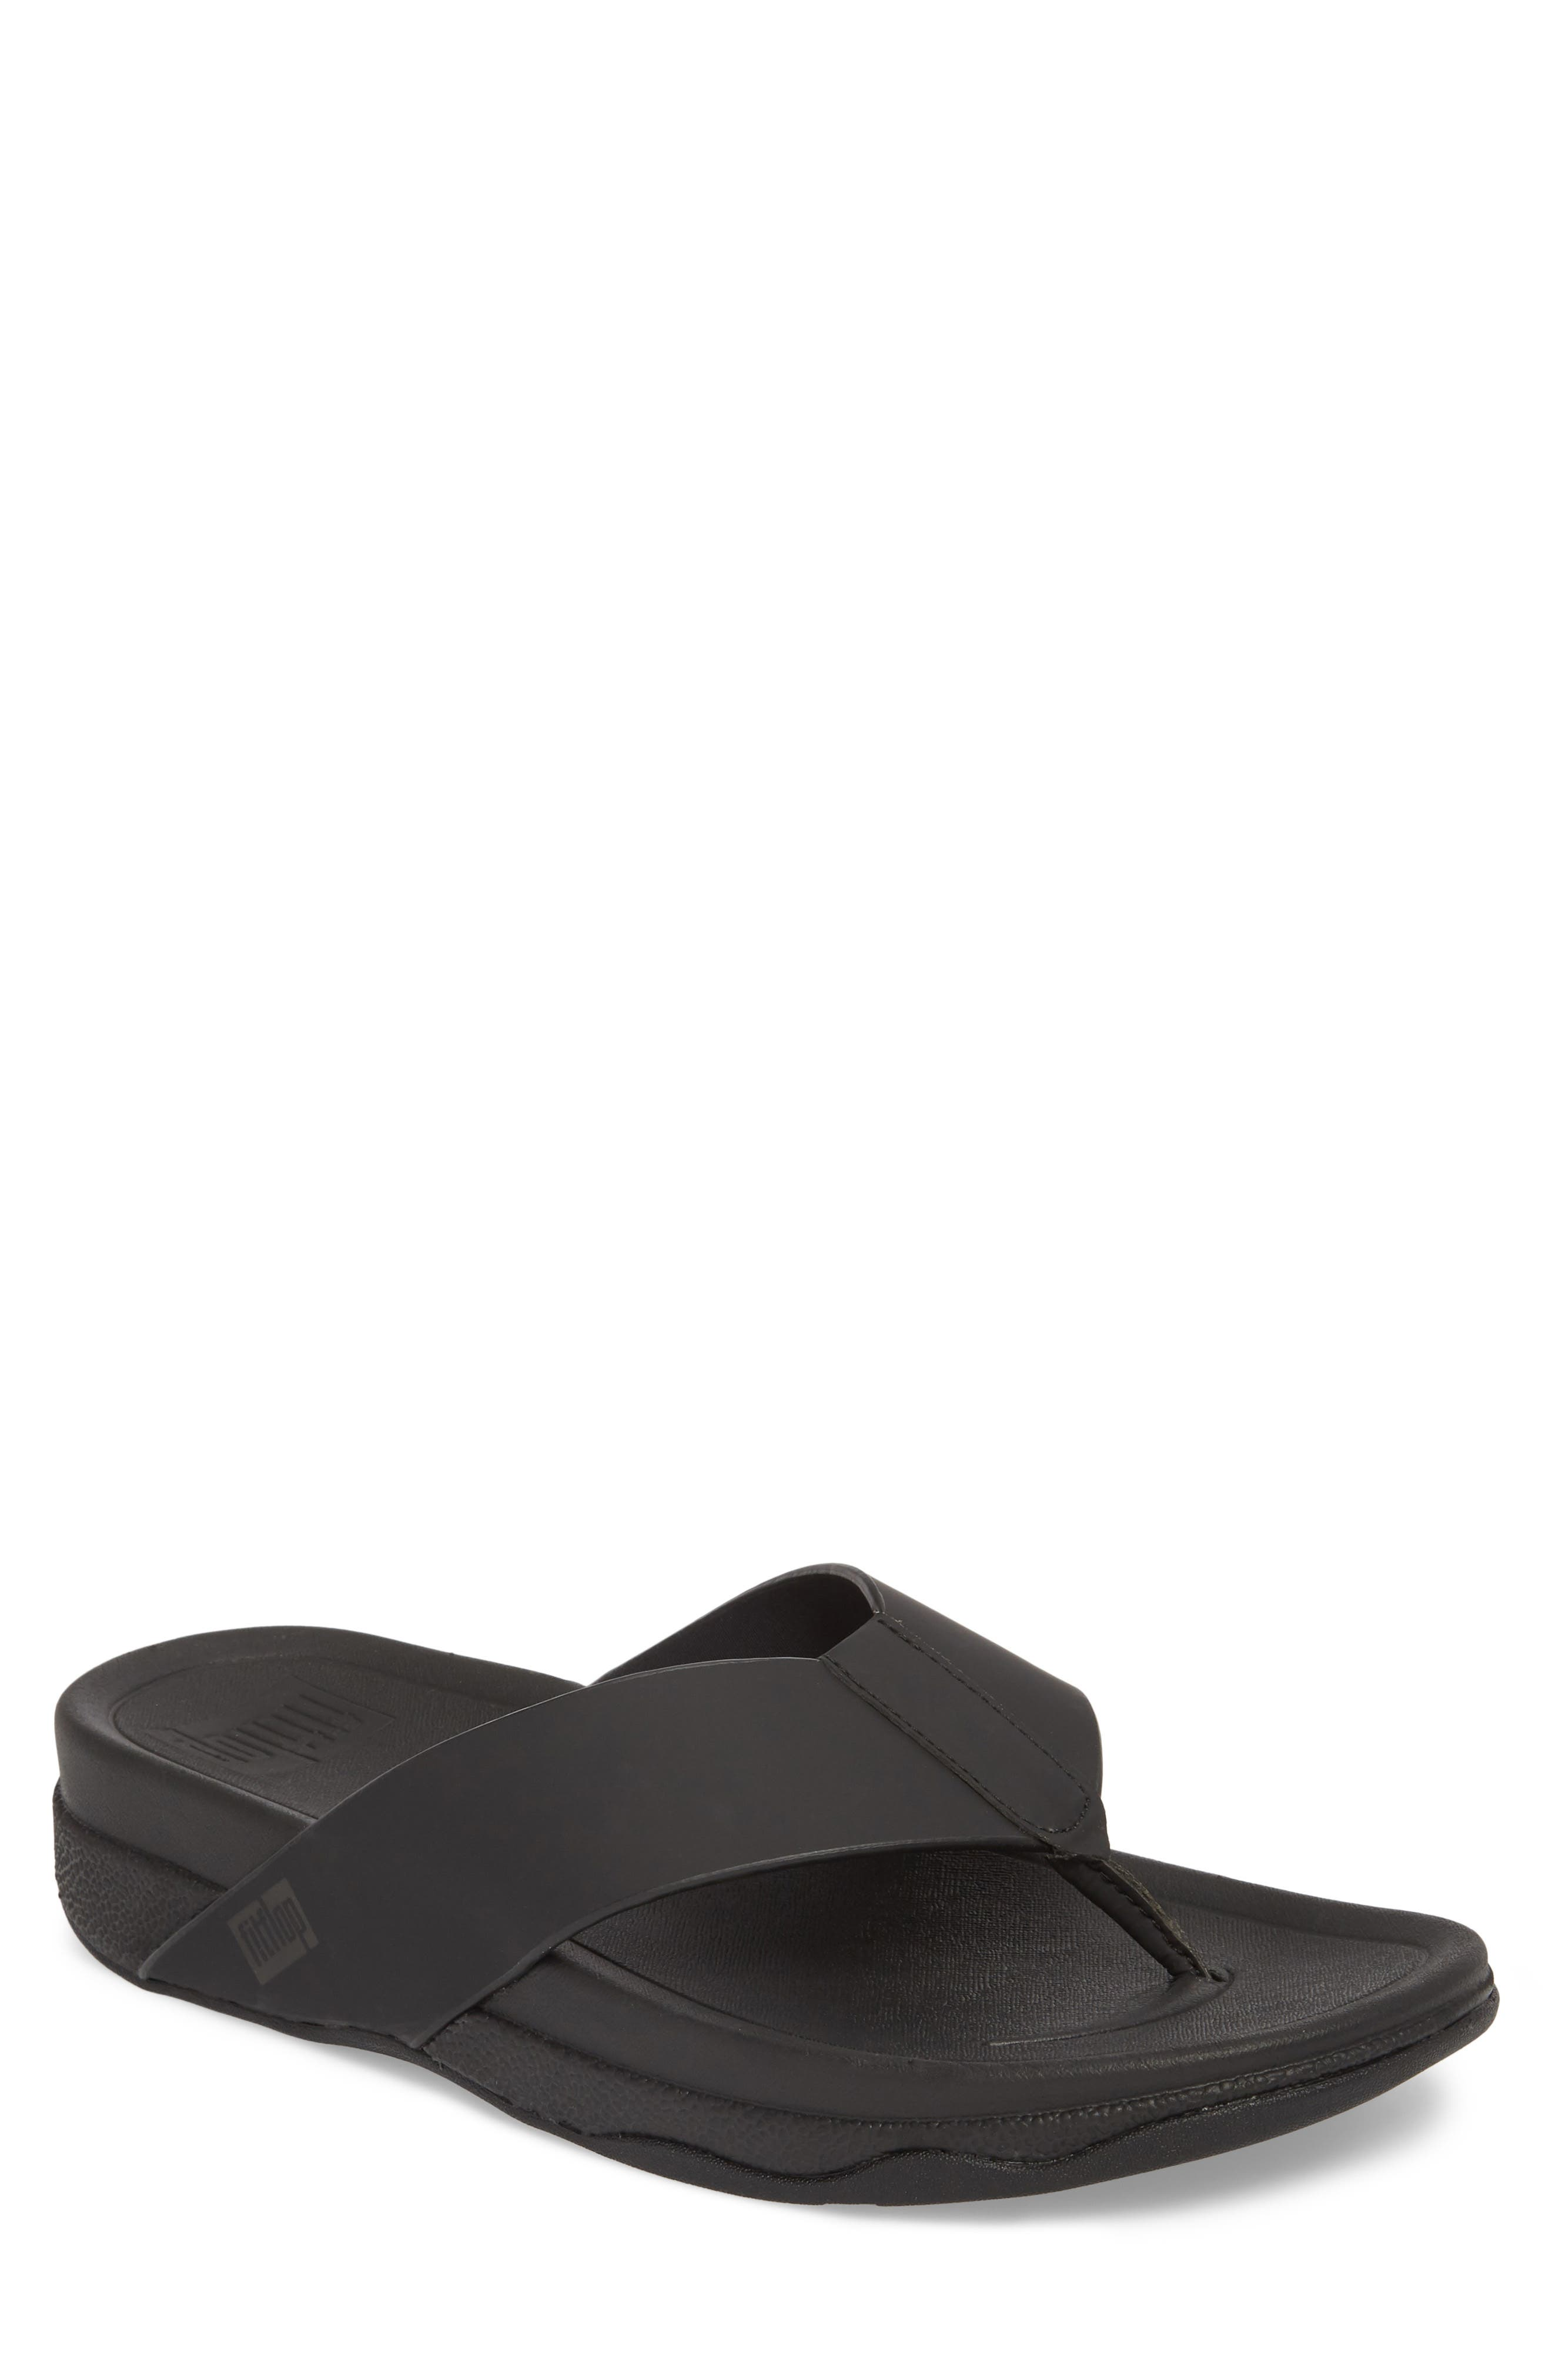 76bd9f7850dded FitFlop for Men